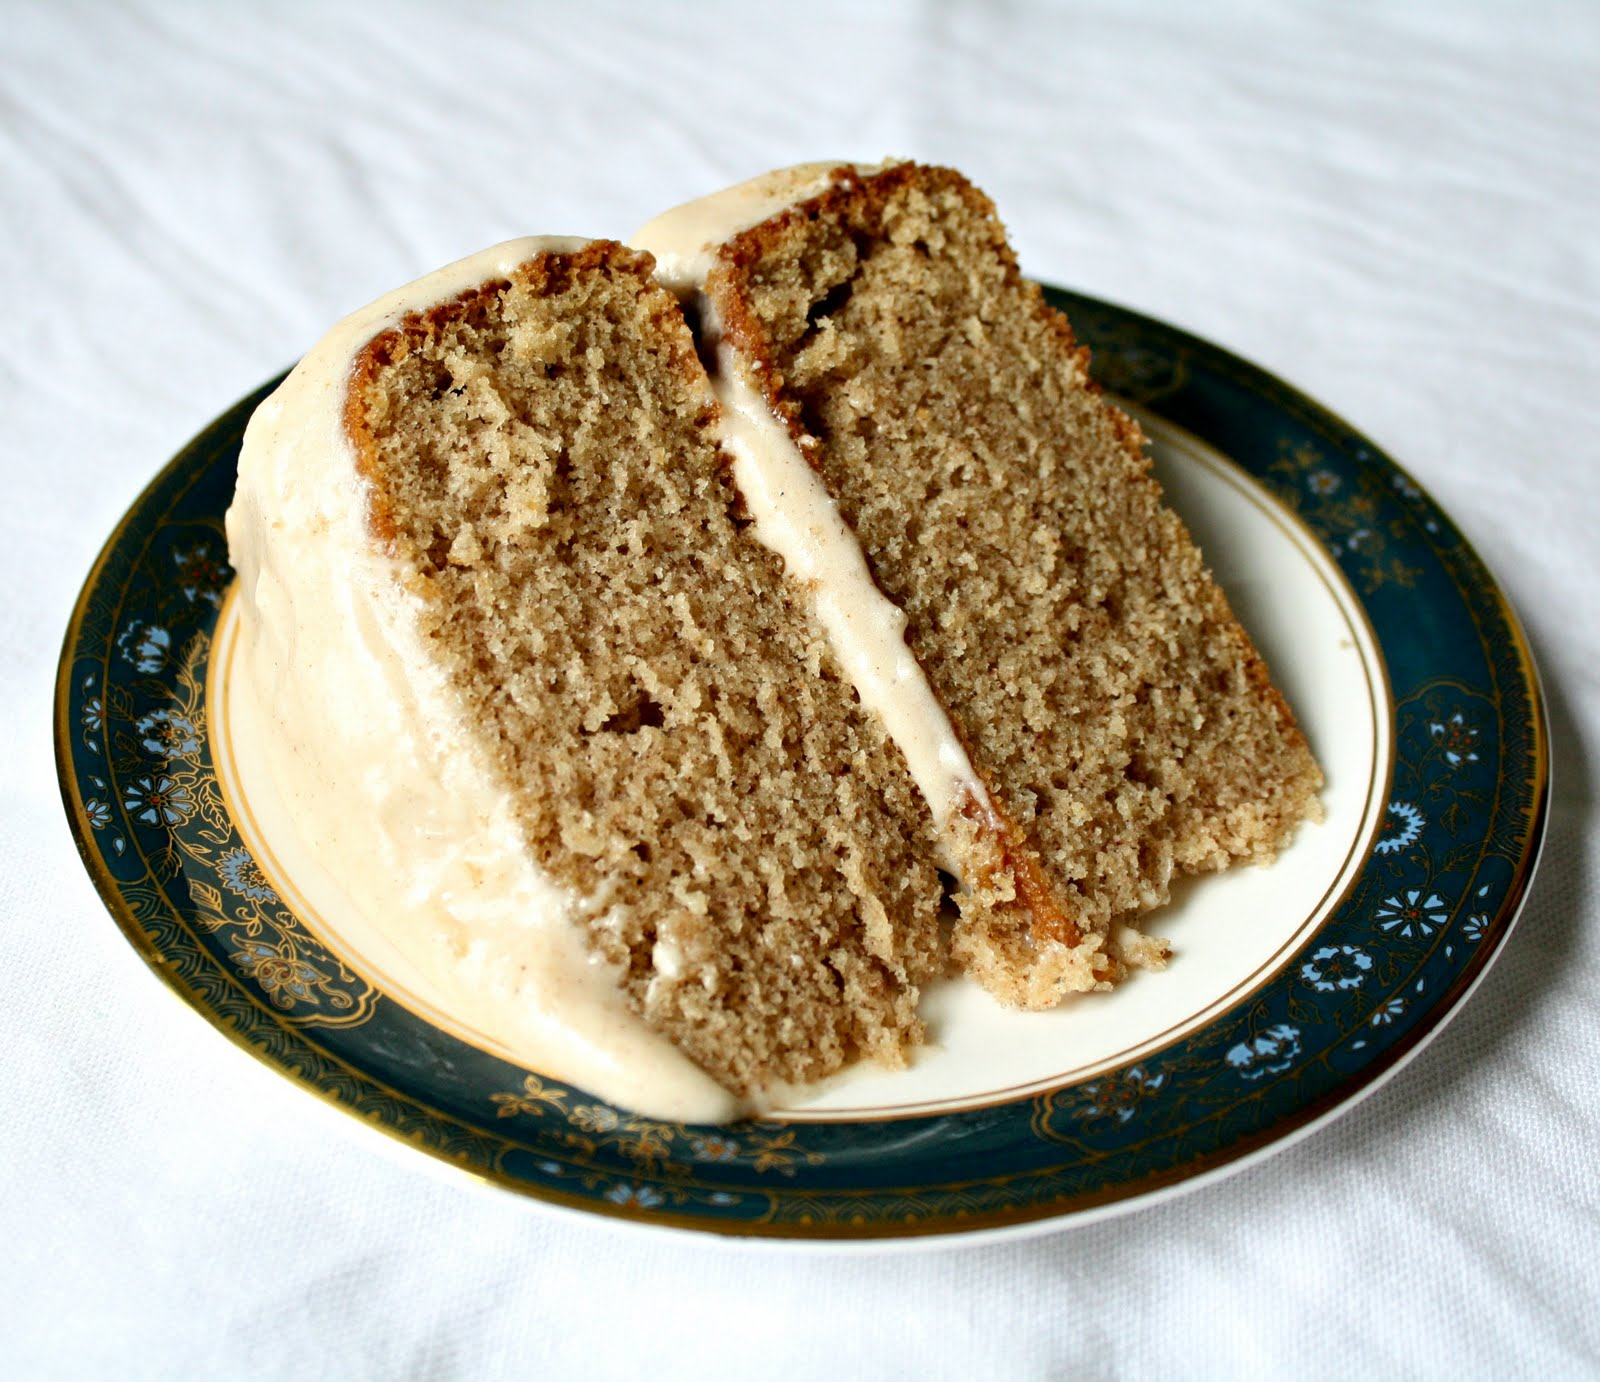 ... Made from Scratch: Spice Layer Cake with Cream Cheese Frosting